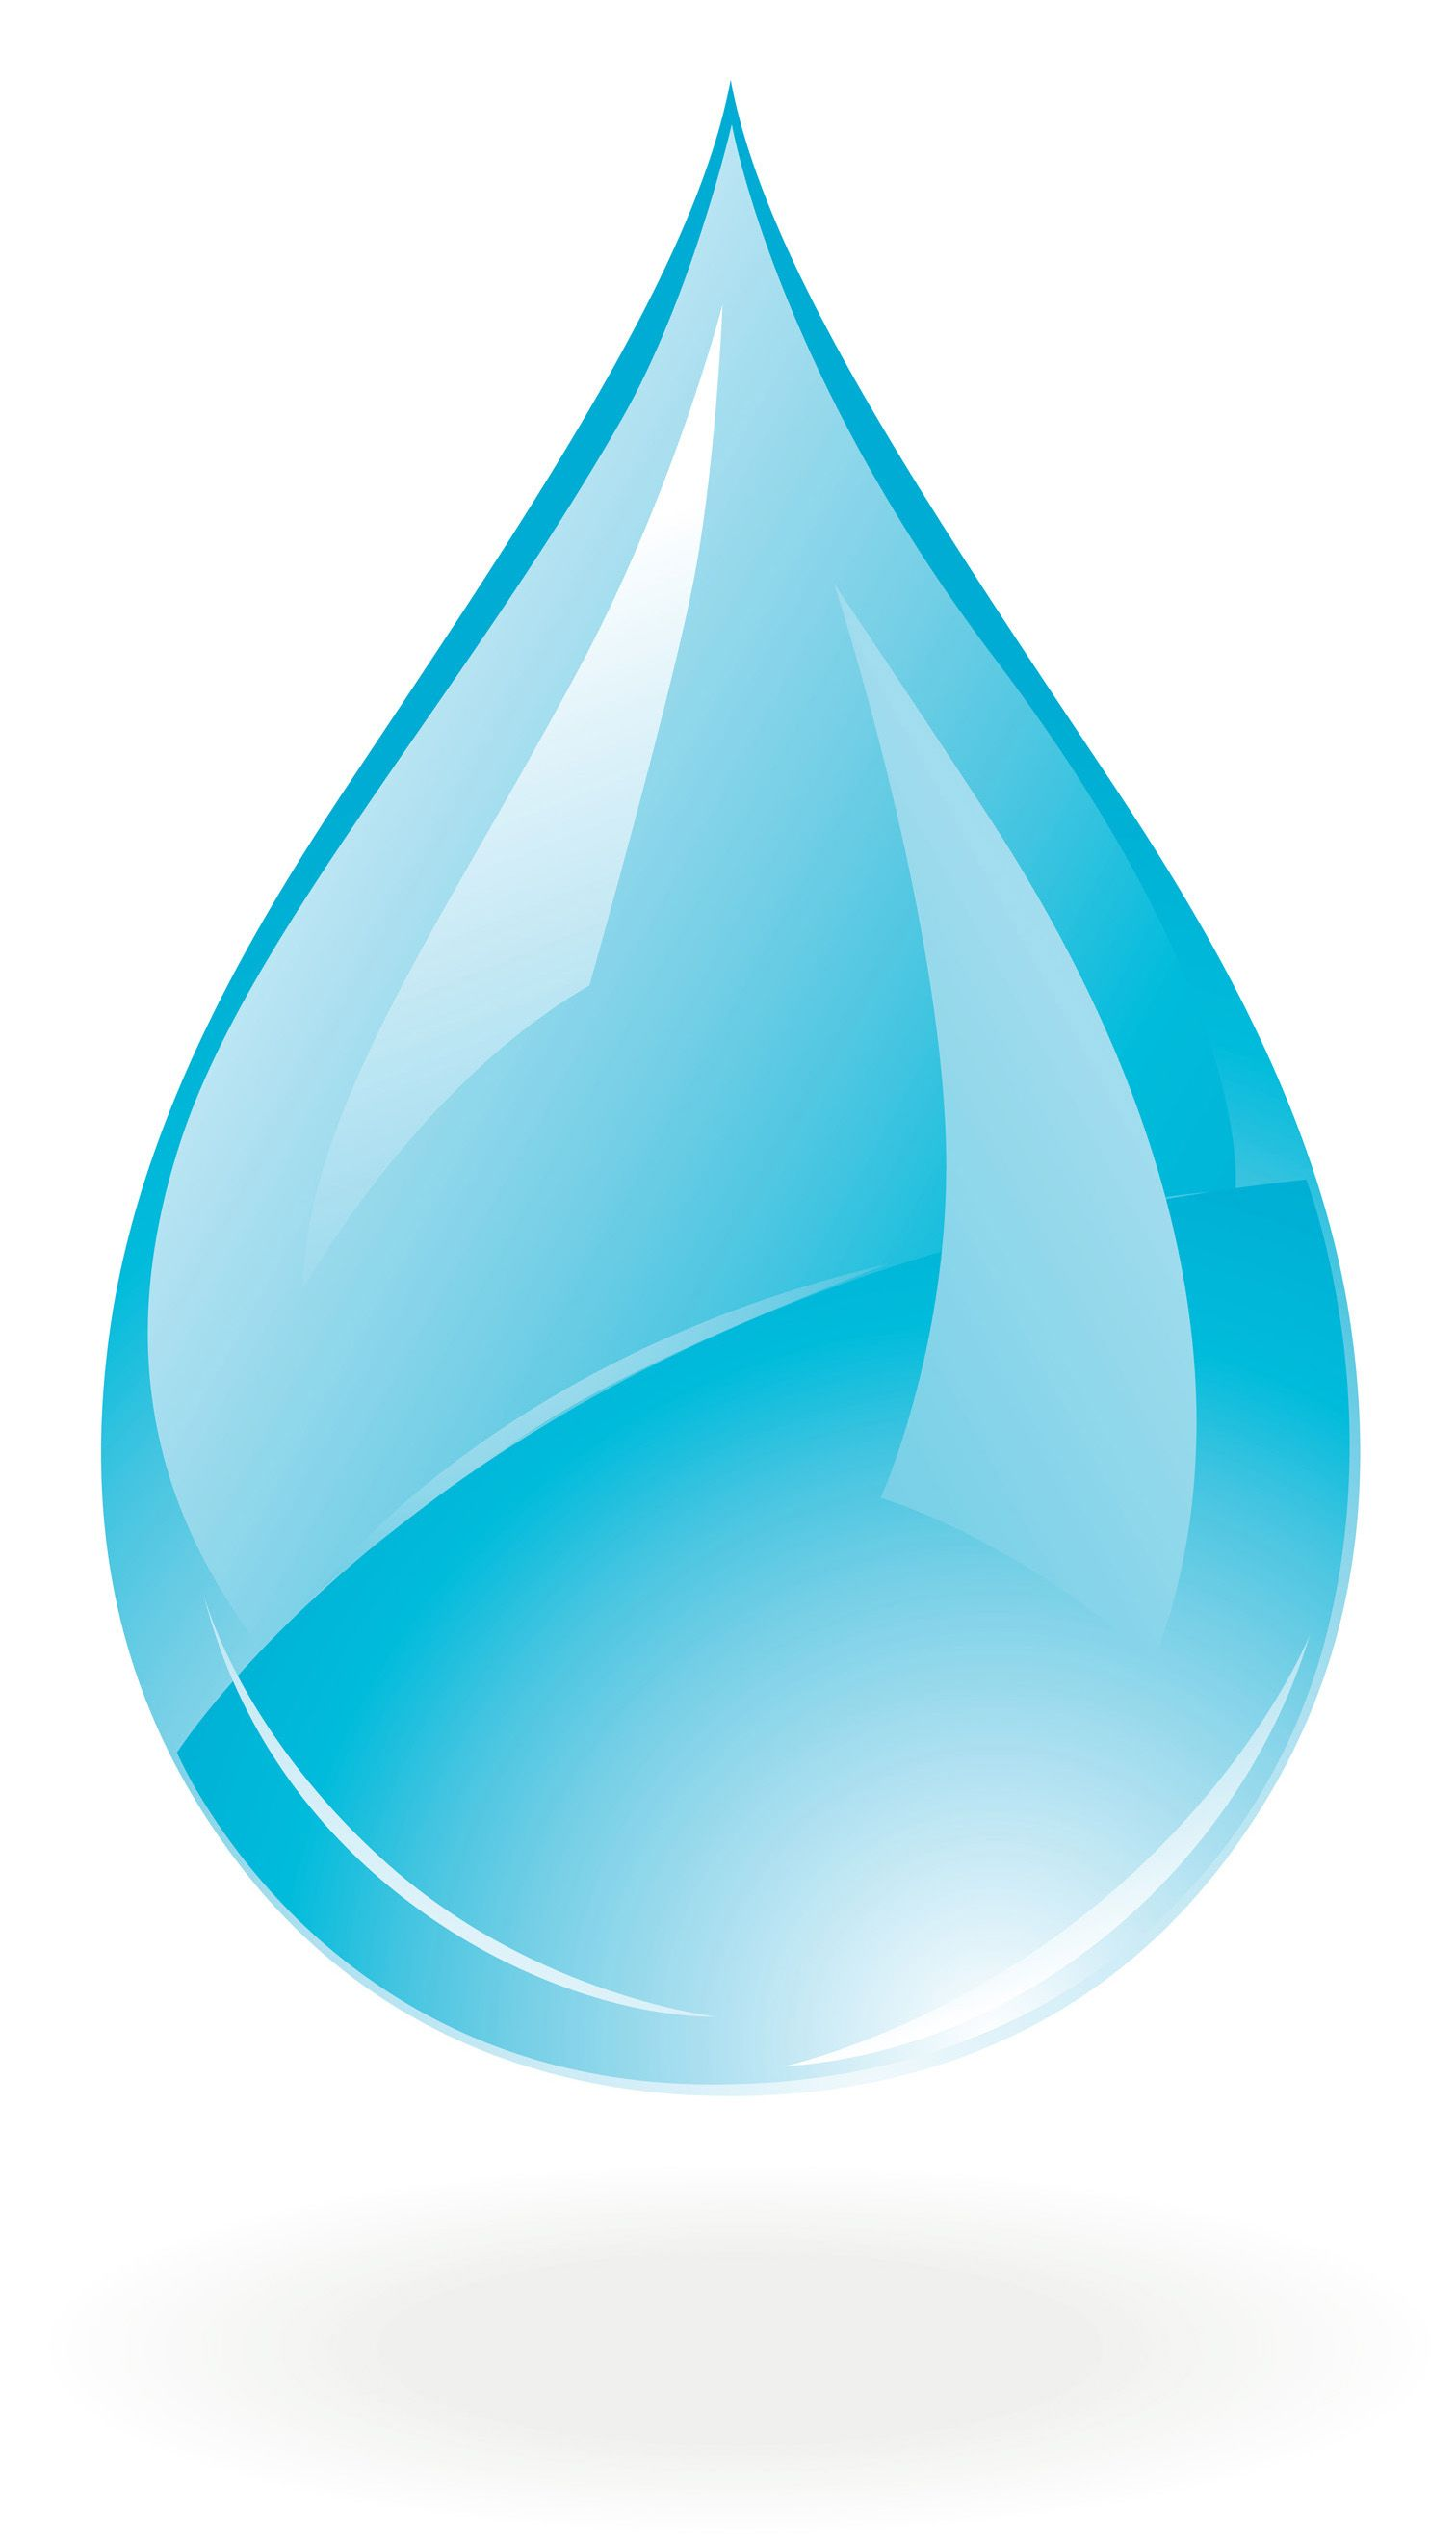 hight resolution of water drop psd clipart